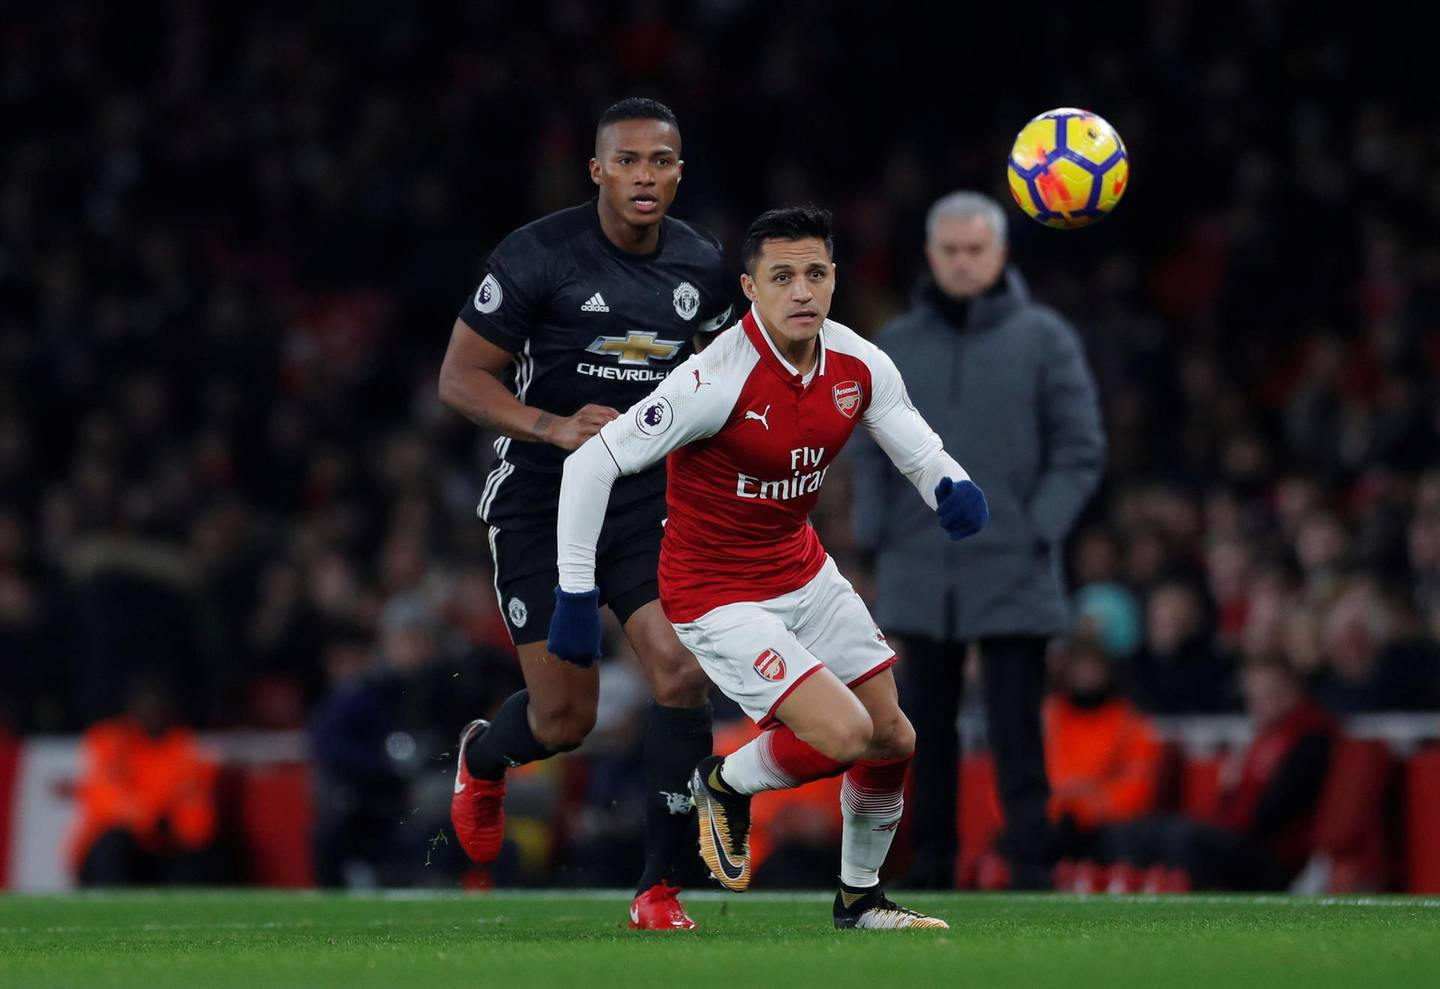 """Soccer Football - Premier League - Arsenal vs Manchester United - Emirates Stadium, London, Britain - December 2, 2017   Arsenal's Alexis Sanchez in action with Manchester United's Antonio Valencia    Action Images via Reuters/Andrew Couldridge    EDITORIAL USE ONLY. No use with unauthorized audio, video, data, fixture lists, club/league logos or """"live"""" services. Online in-match use limited to 75 images, no video emulation. No use in betting, games or single club/league/player publications. Please contact your account representative for further details."""